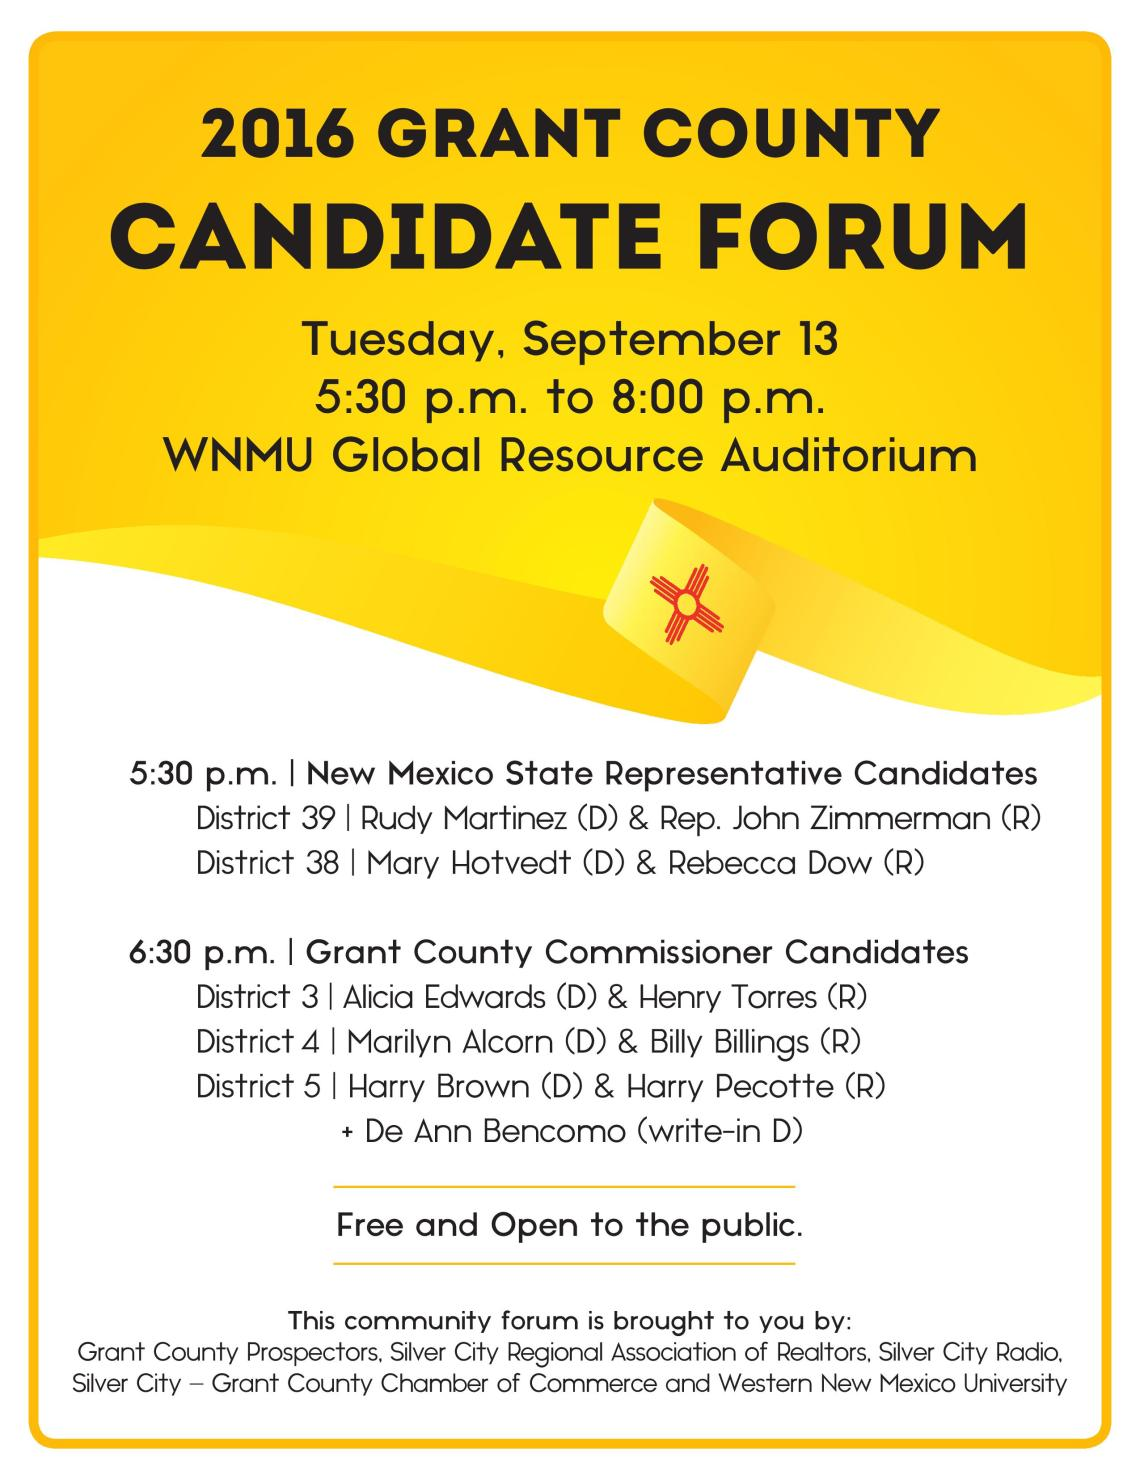 Flyer_2016 Grant County Candidate-Forum-page-001.jpg